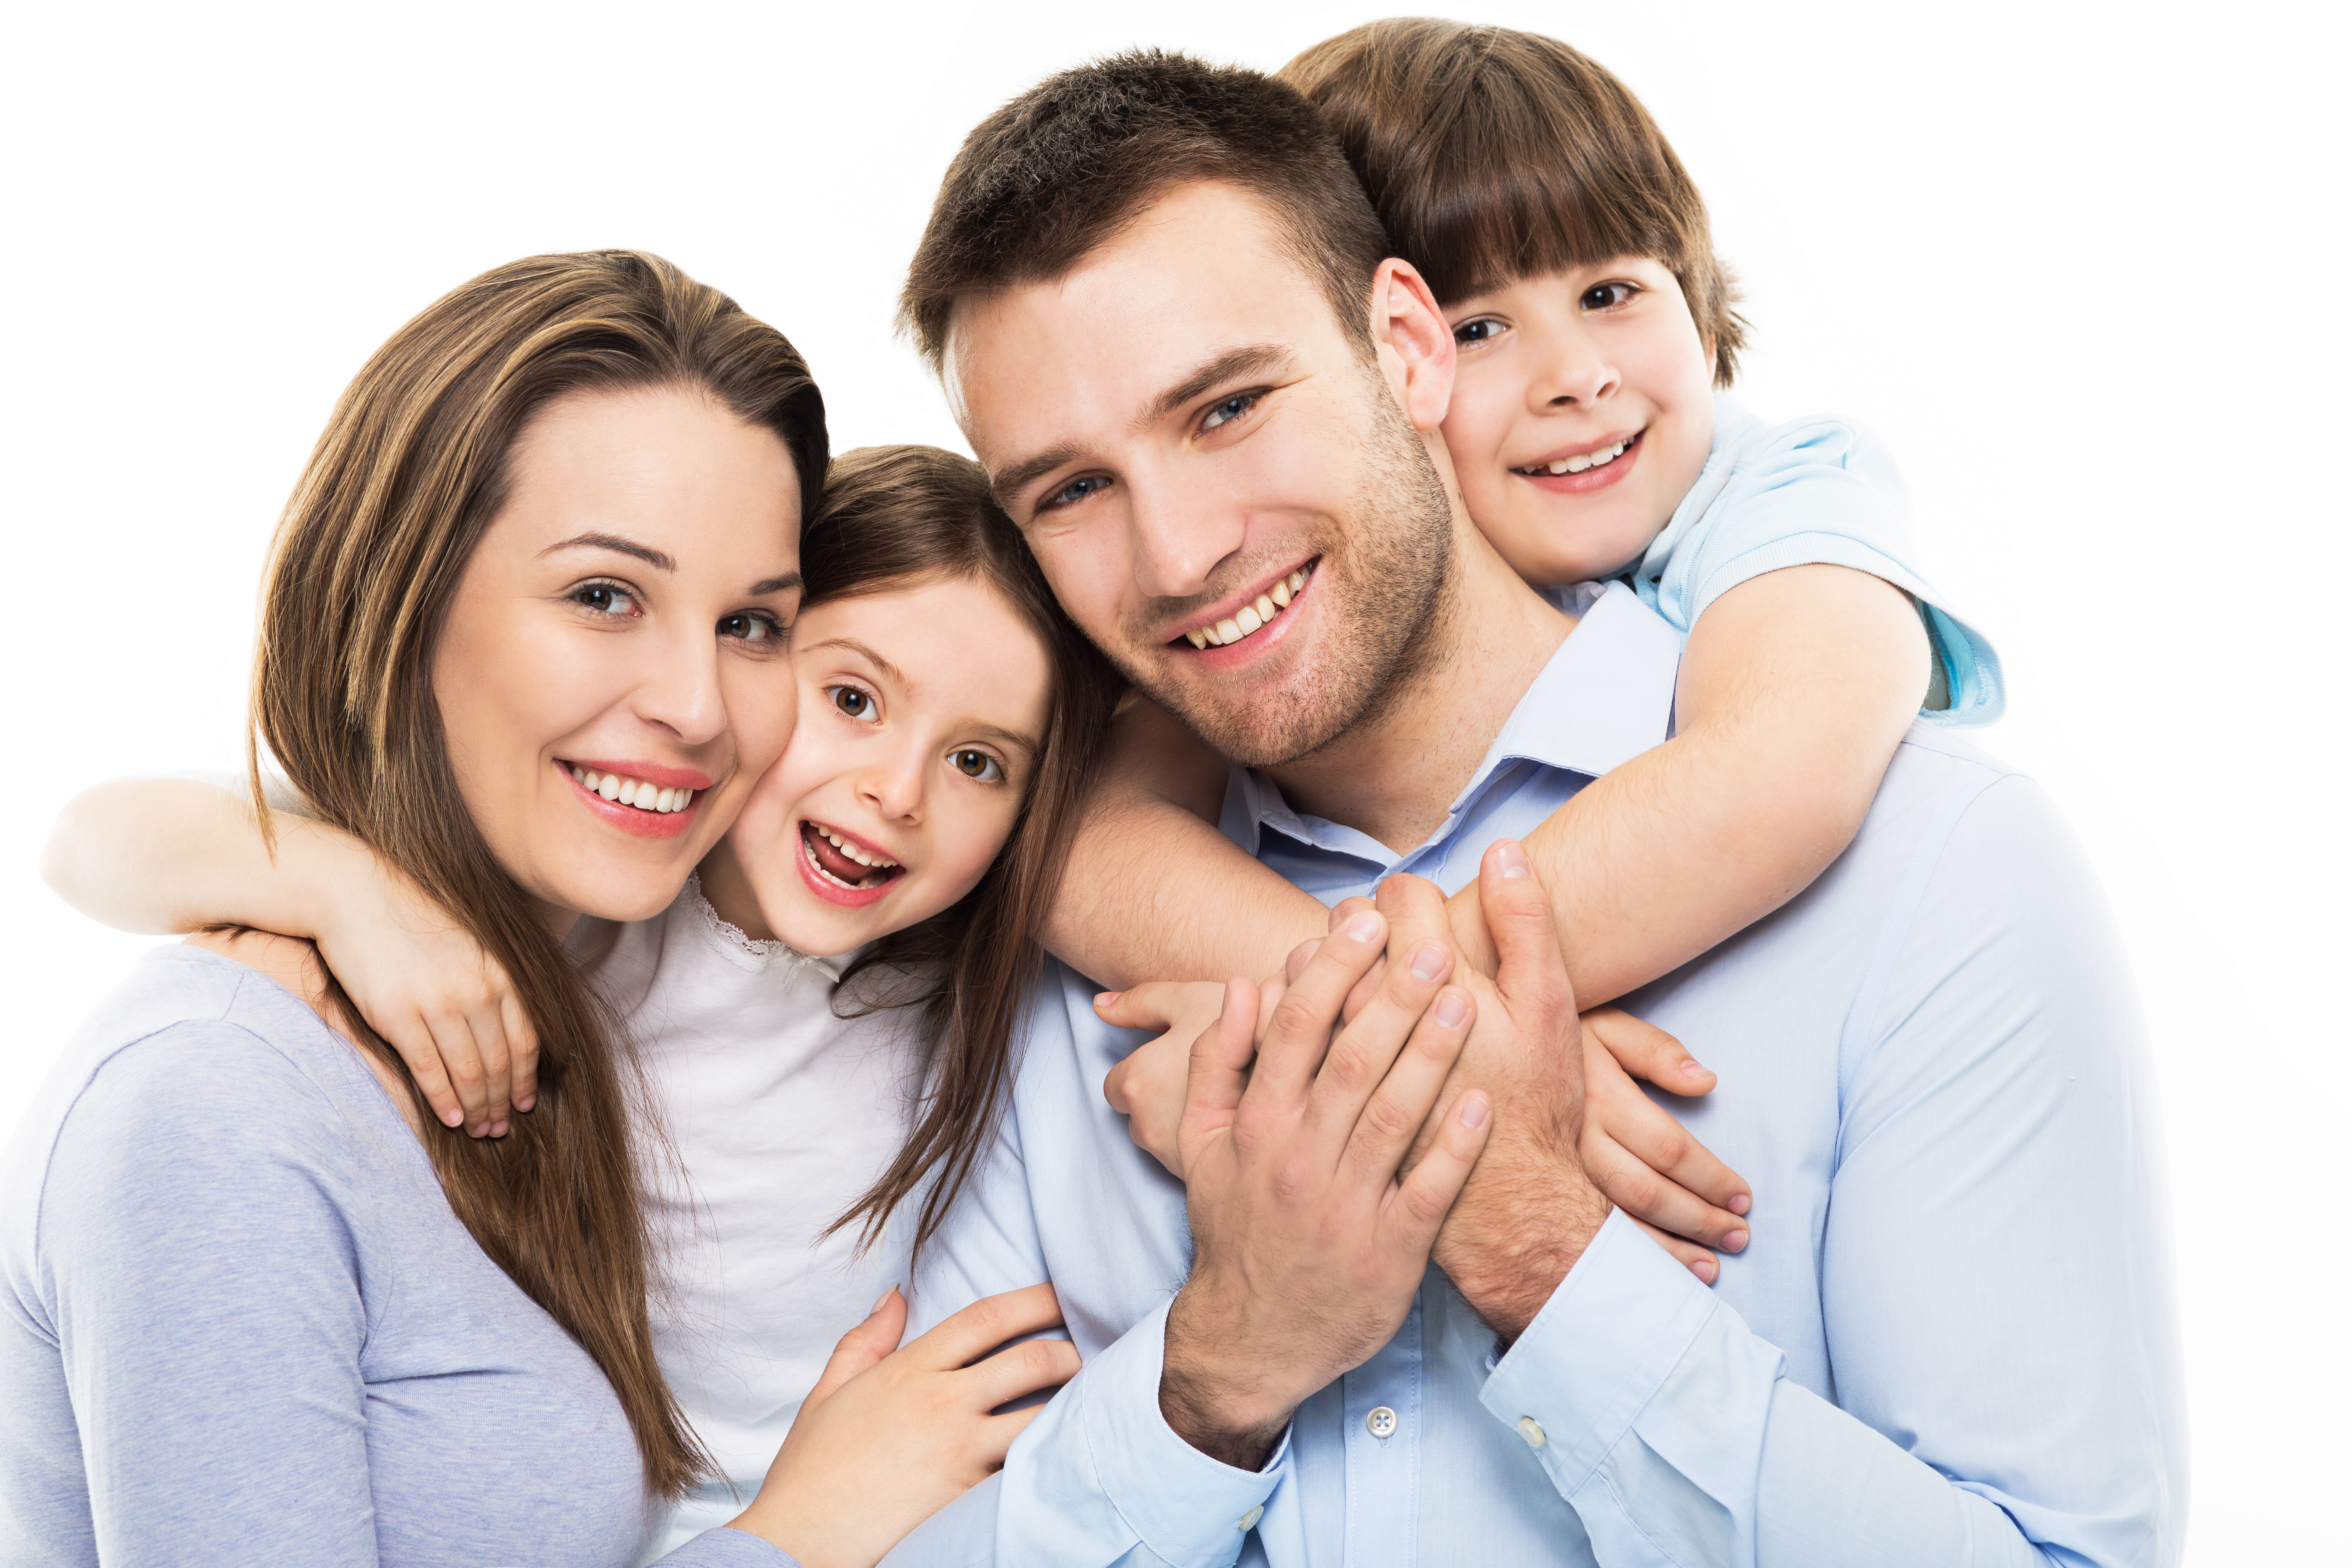 Family Dentistry at Morningstar Dental in Orleans, Ontario, Canada